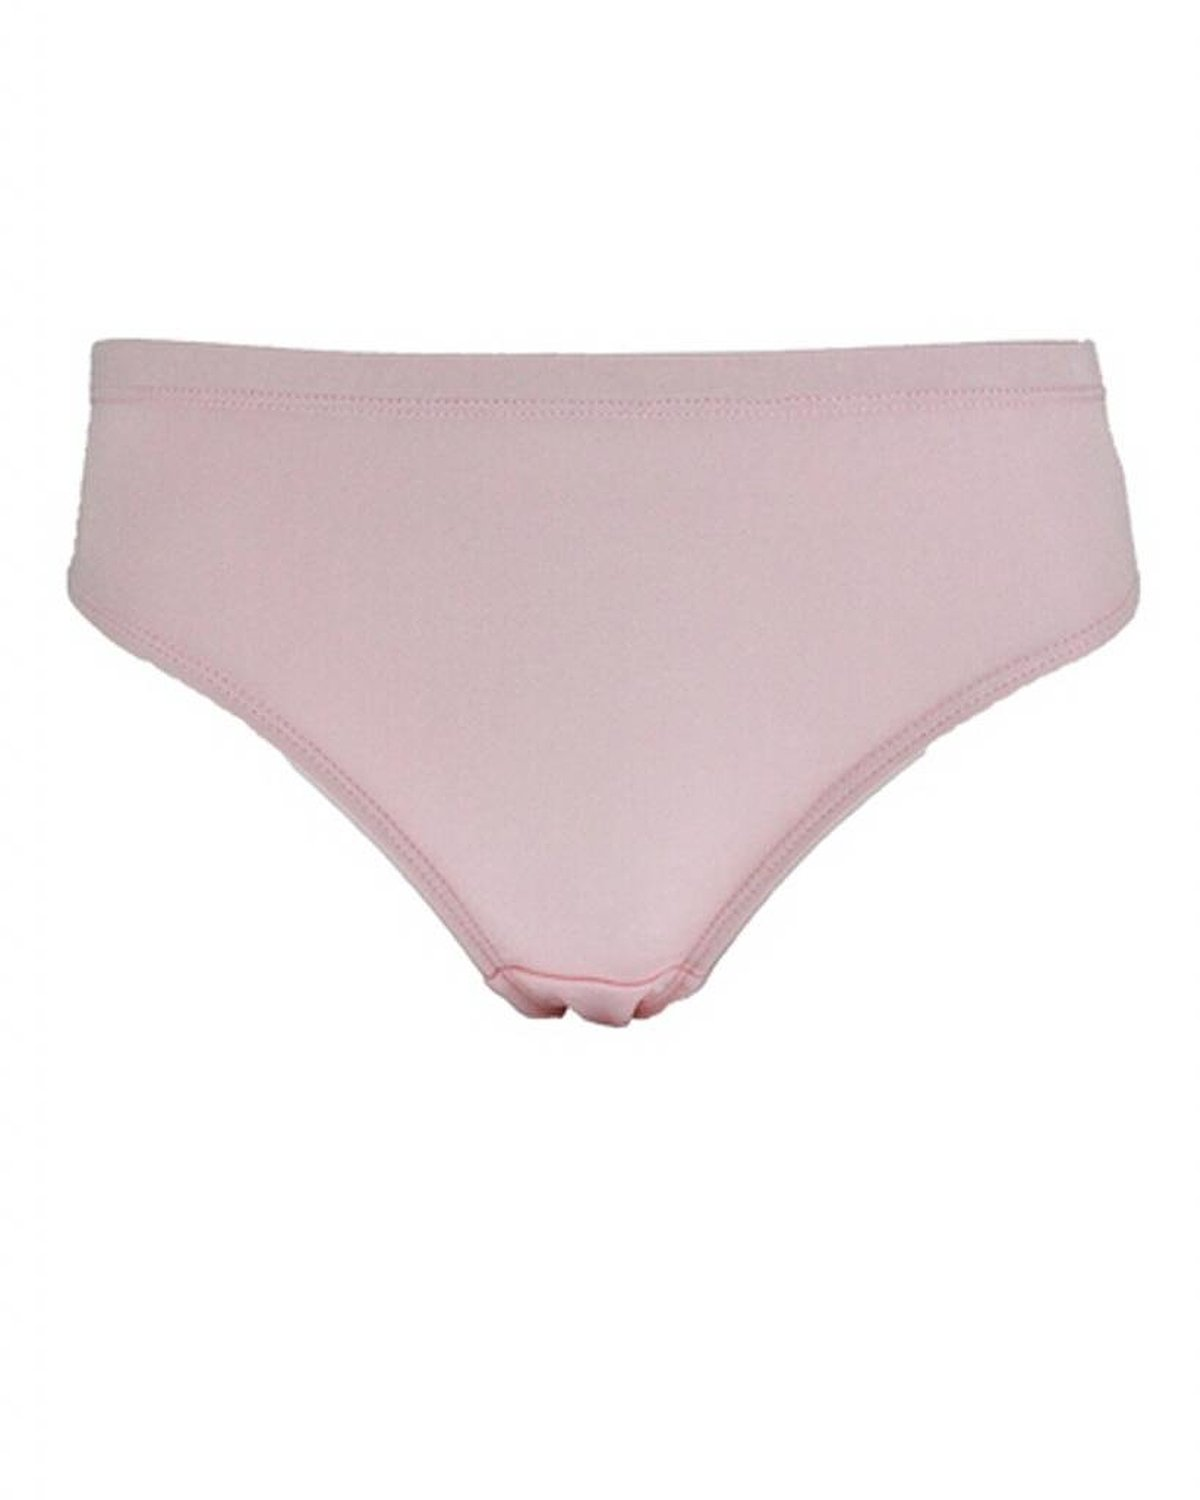 4fdc453140c9c2 Get Quotations · Plumsika Women's 100% Satin Silk, Ultra Luxury Briefs,  Panties Intimates Pink size M